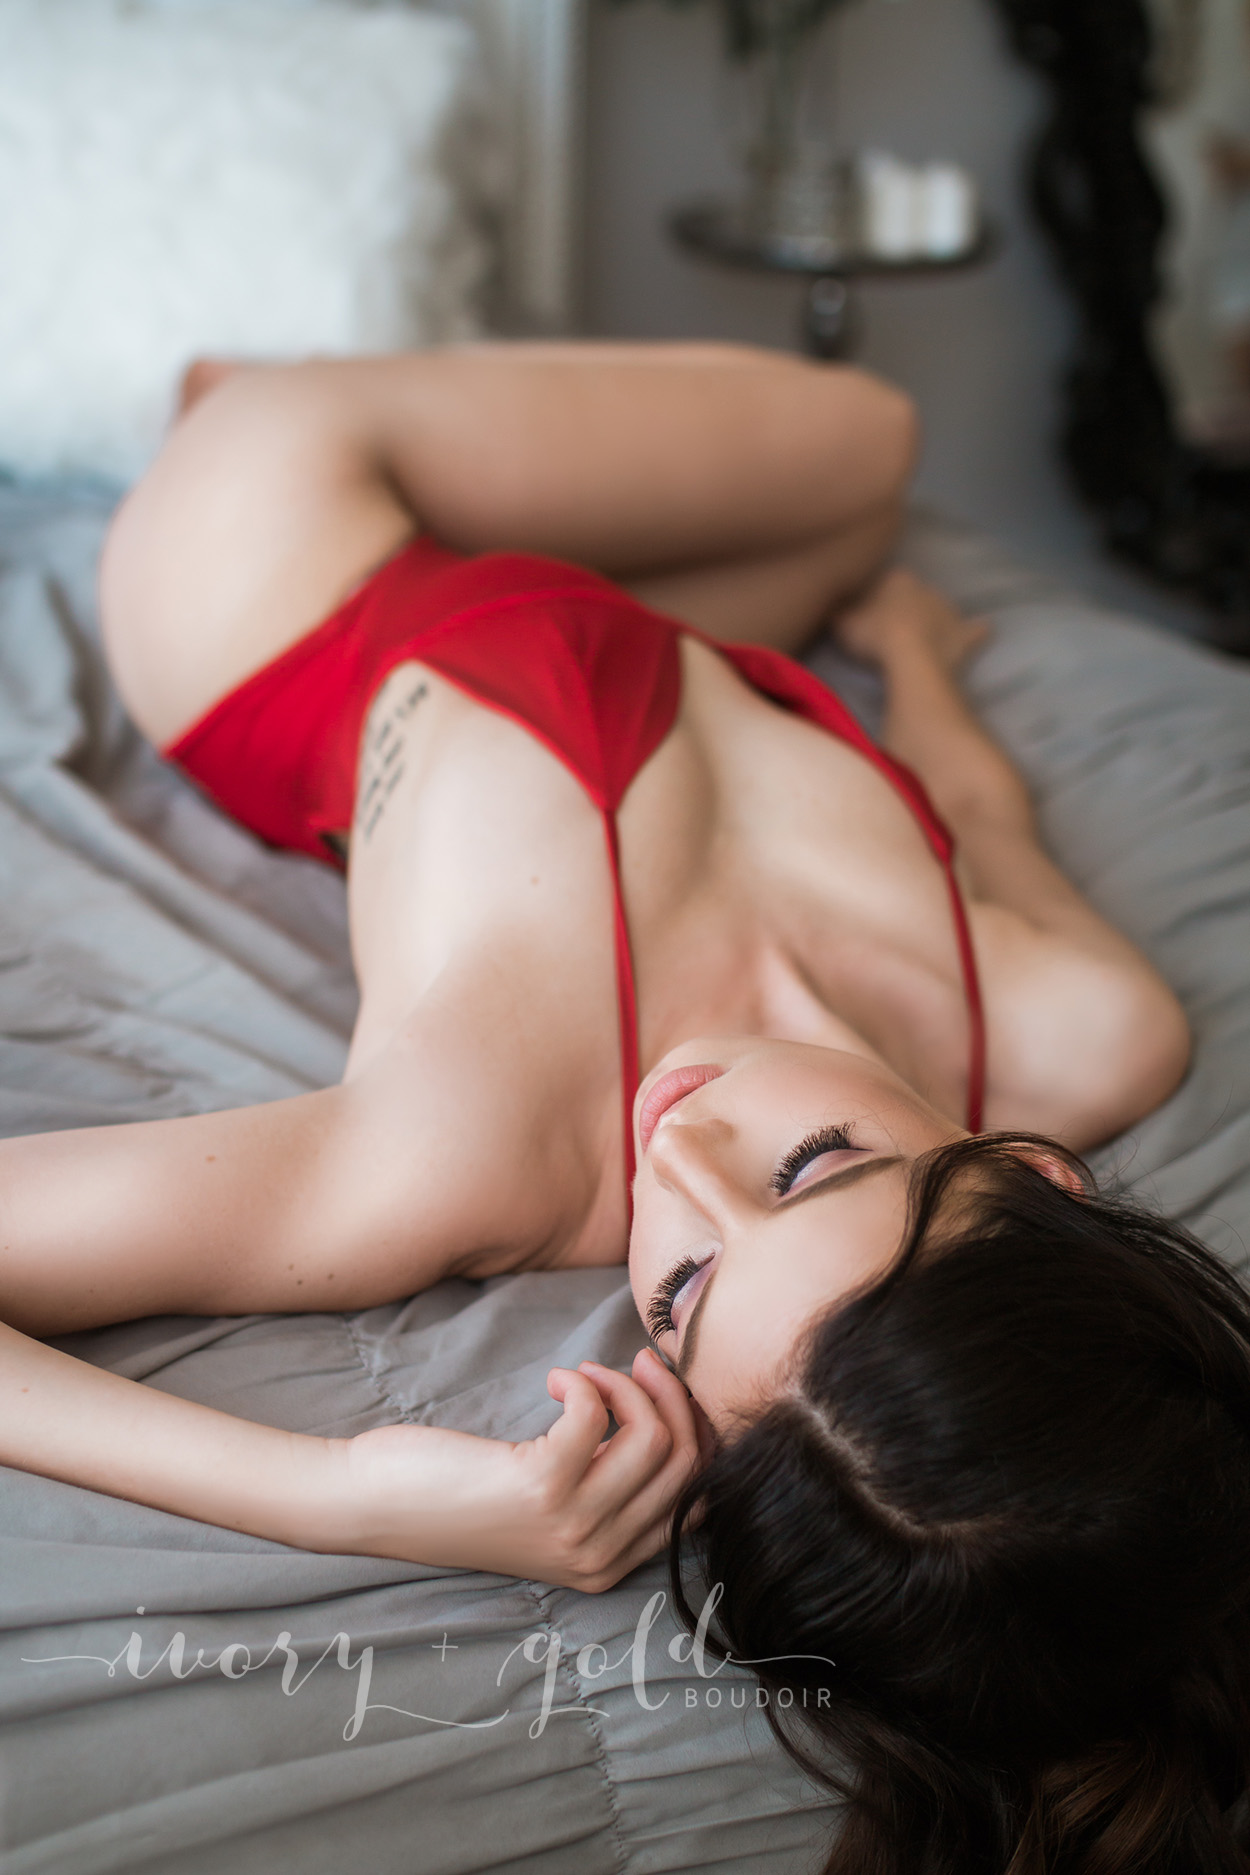 Ivory and Gold Vancouver Photographer for Vancouver Boudoir Photography and Vancouver Wedding Photography